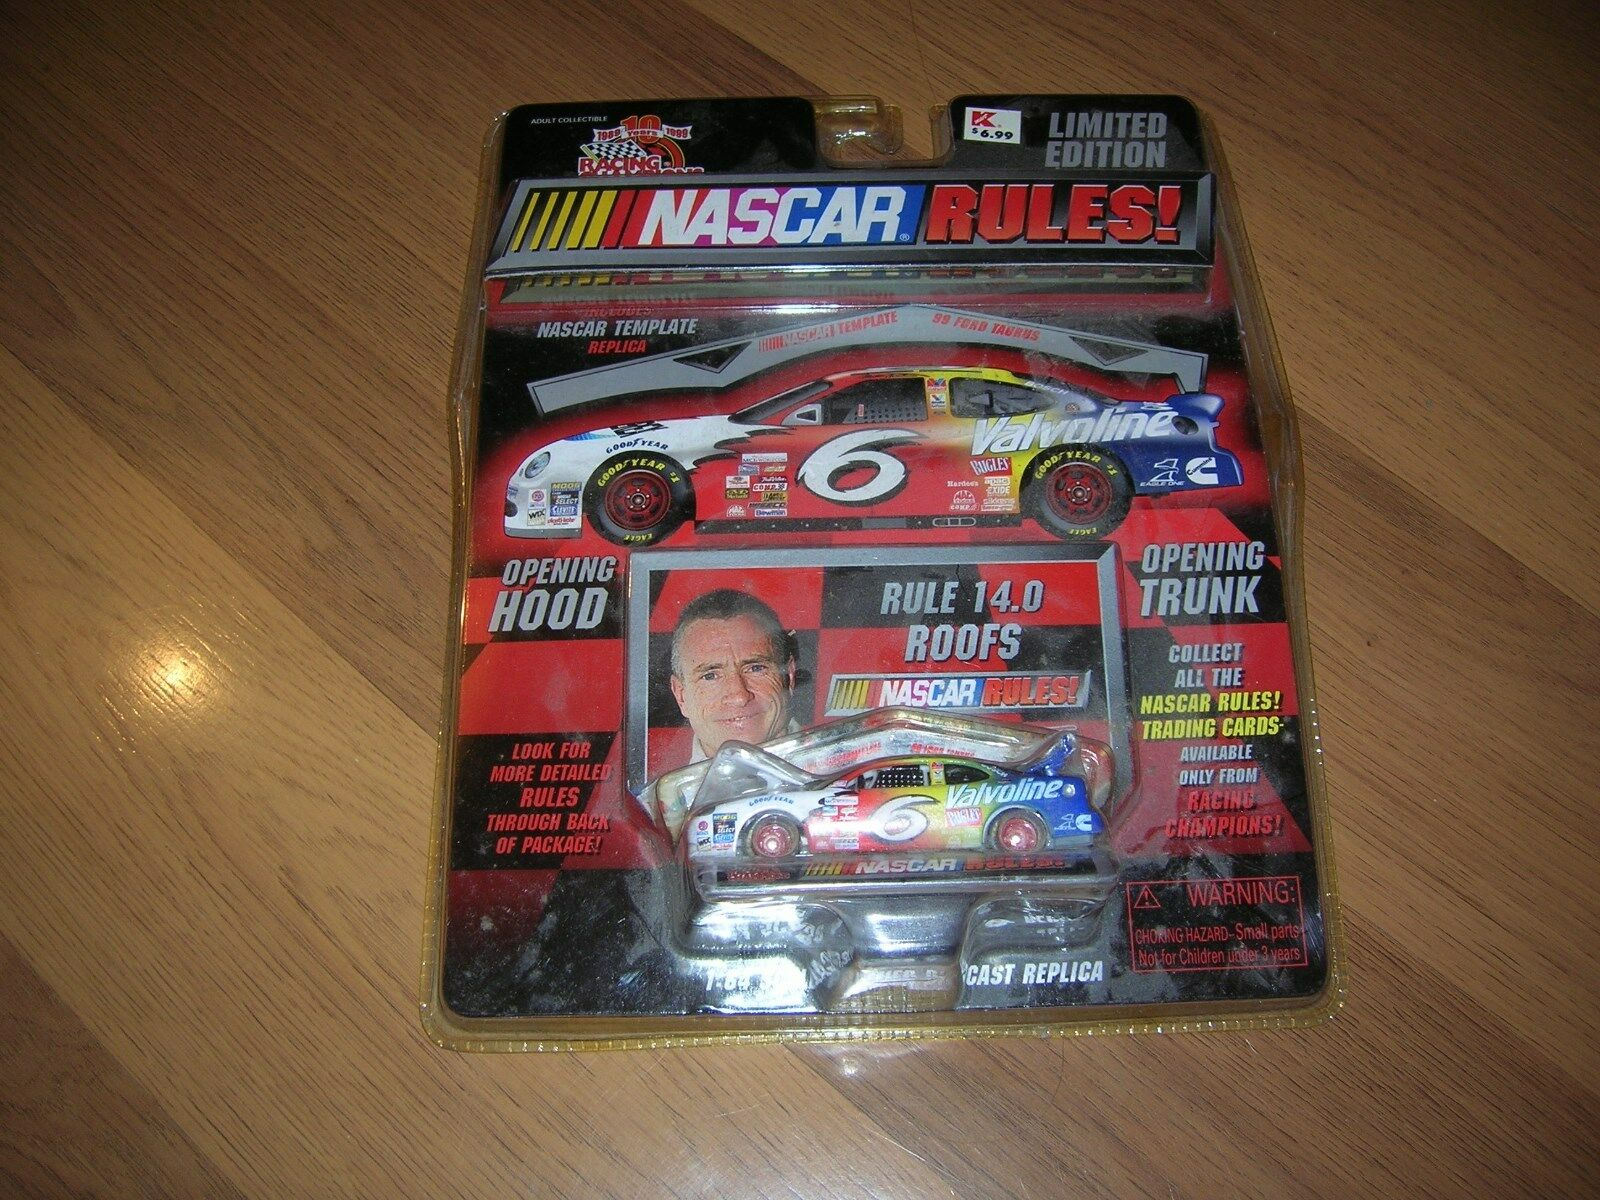 NASCAR RULES MARK MARTIN LIMITED EDITION RACING CHAMPIONSHIP